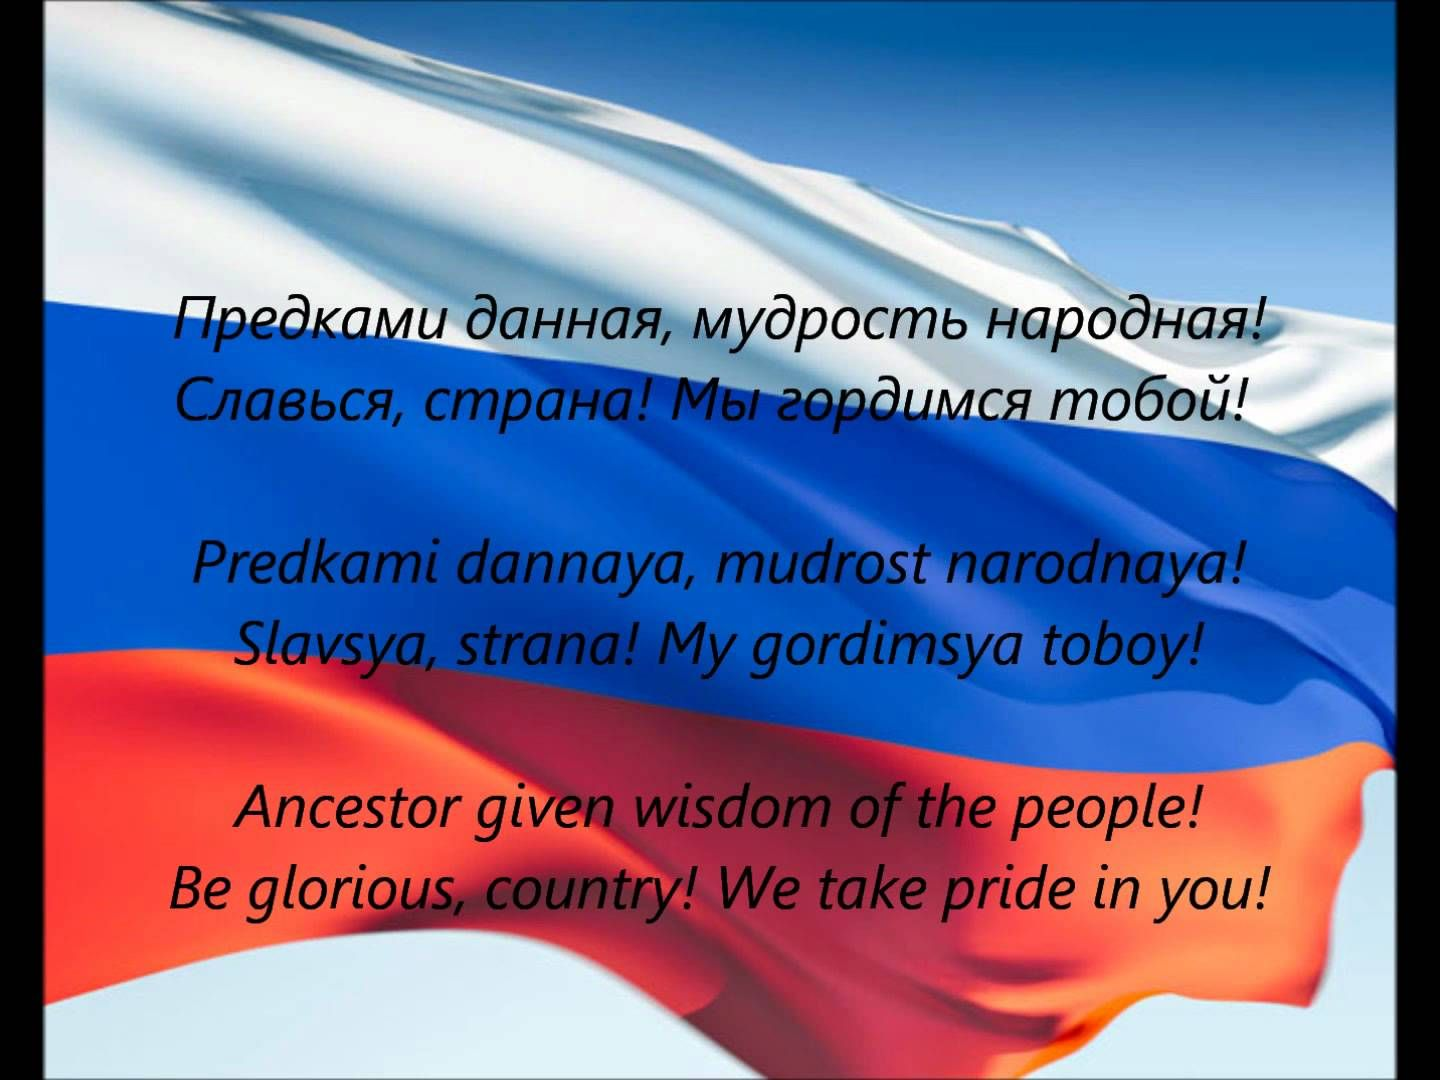 russian national anthem with lyrics and translation in full hd